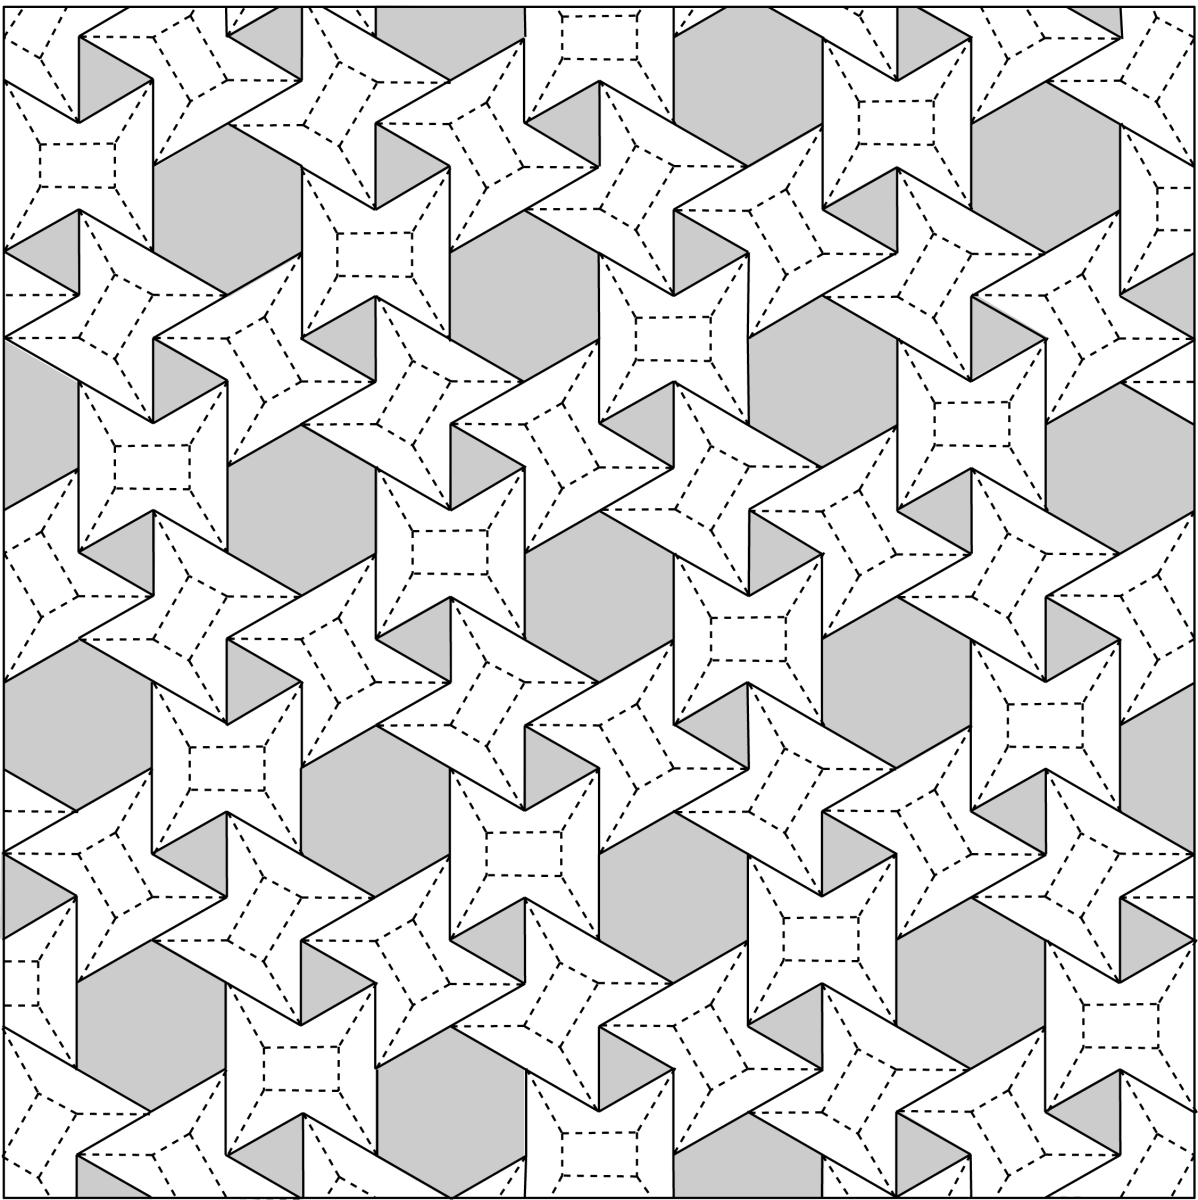 3.6.3.6 Waterbomb / Flagstone Tessellation, Crease Pattern